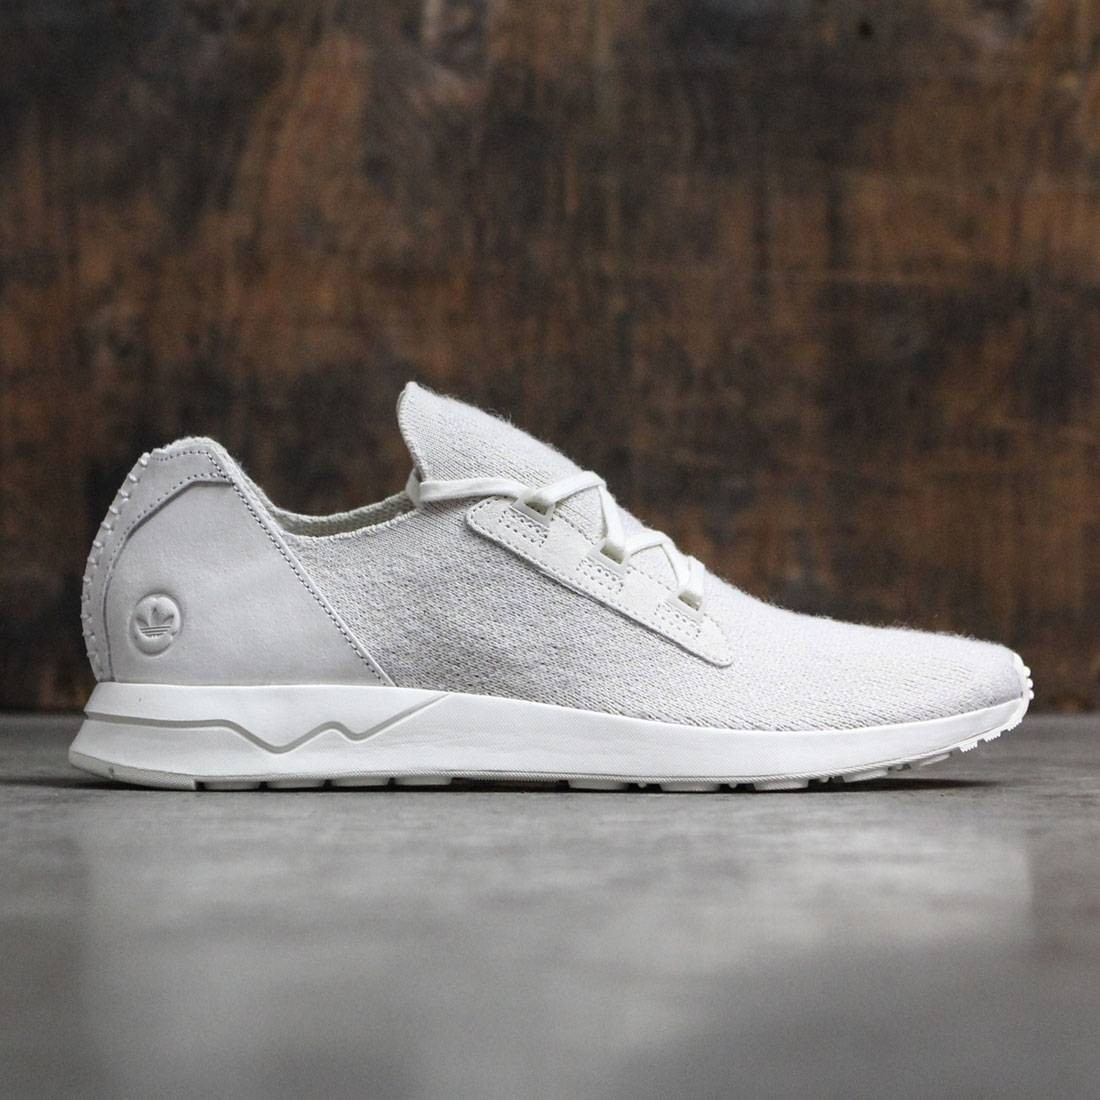 on sale 37960 84857 Adidas Consortium x Wings And Horns Men ZX Flux Primeknit (white / off  white)